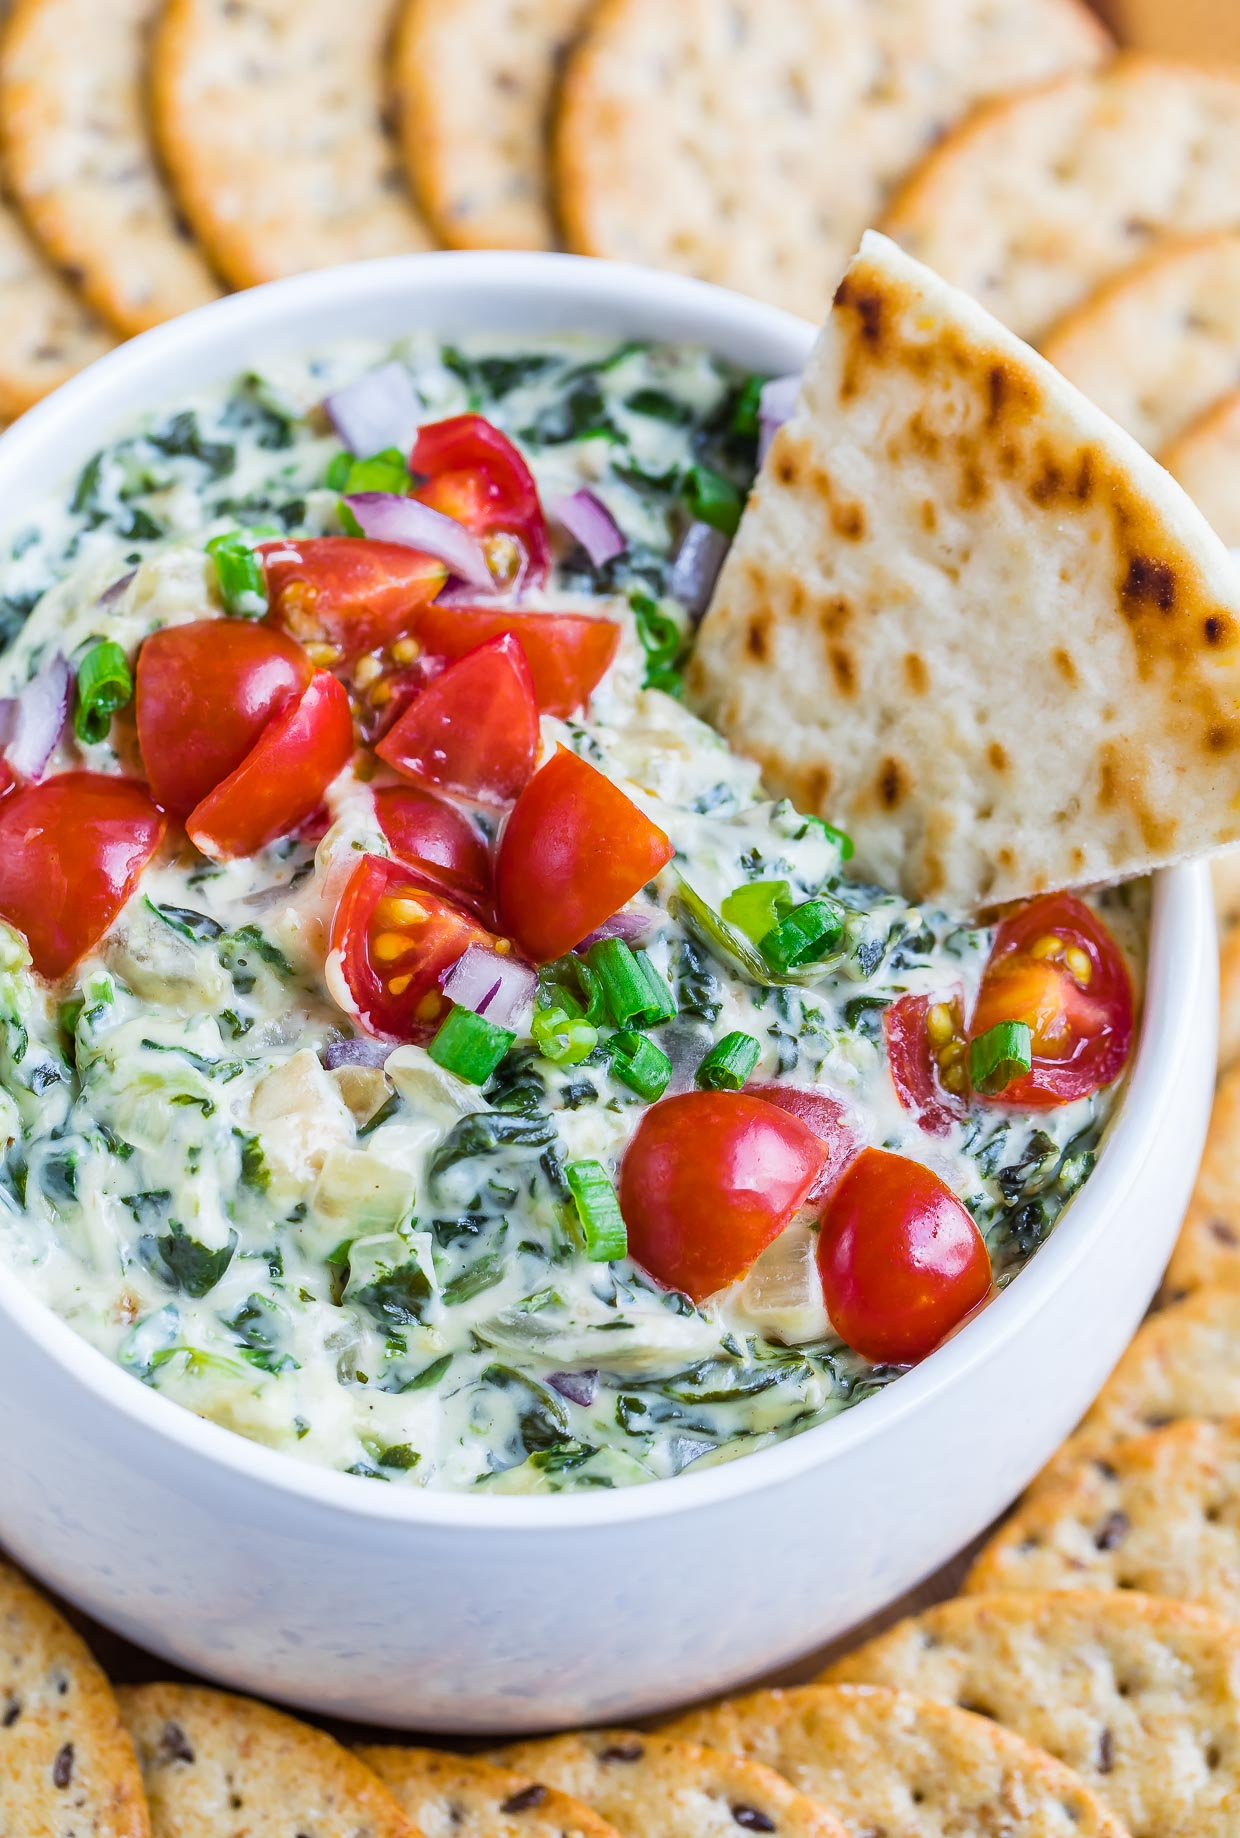 This healthy hot spinach artichoke dip is going to rock your world! Dive in with a few pita chips and a pile of crunchy veggies and be prepared to hover over the bowl until it's gone!